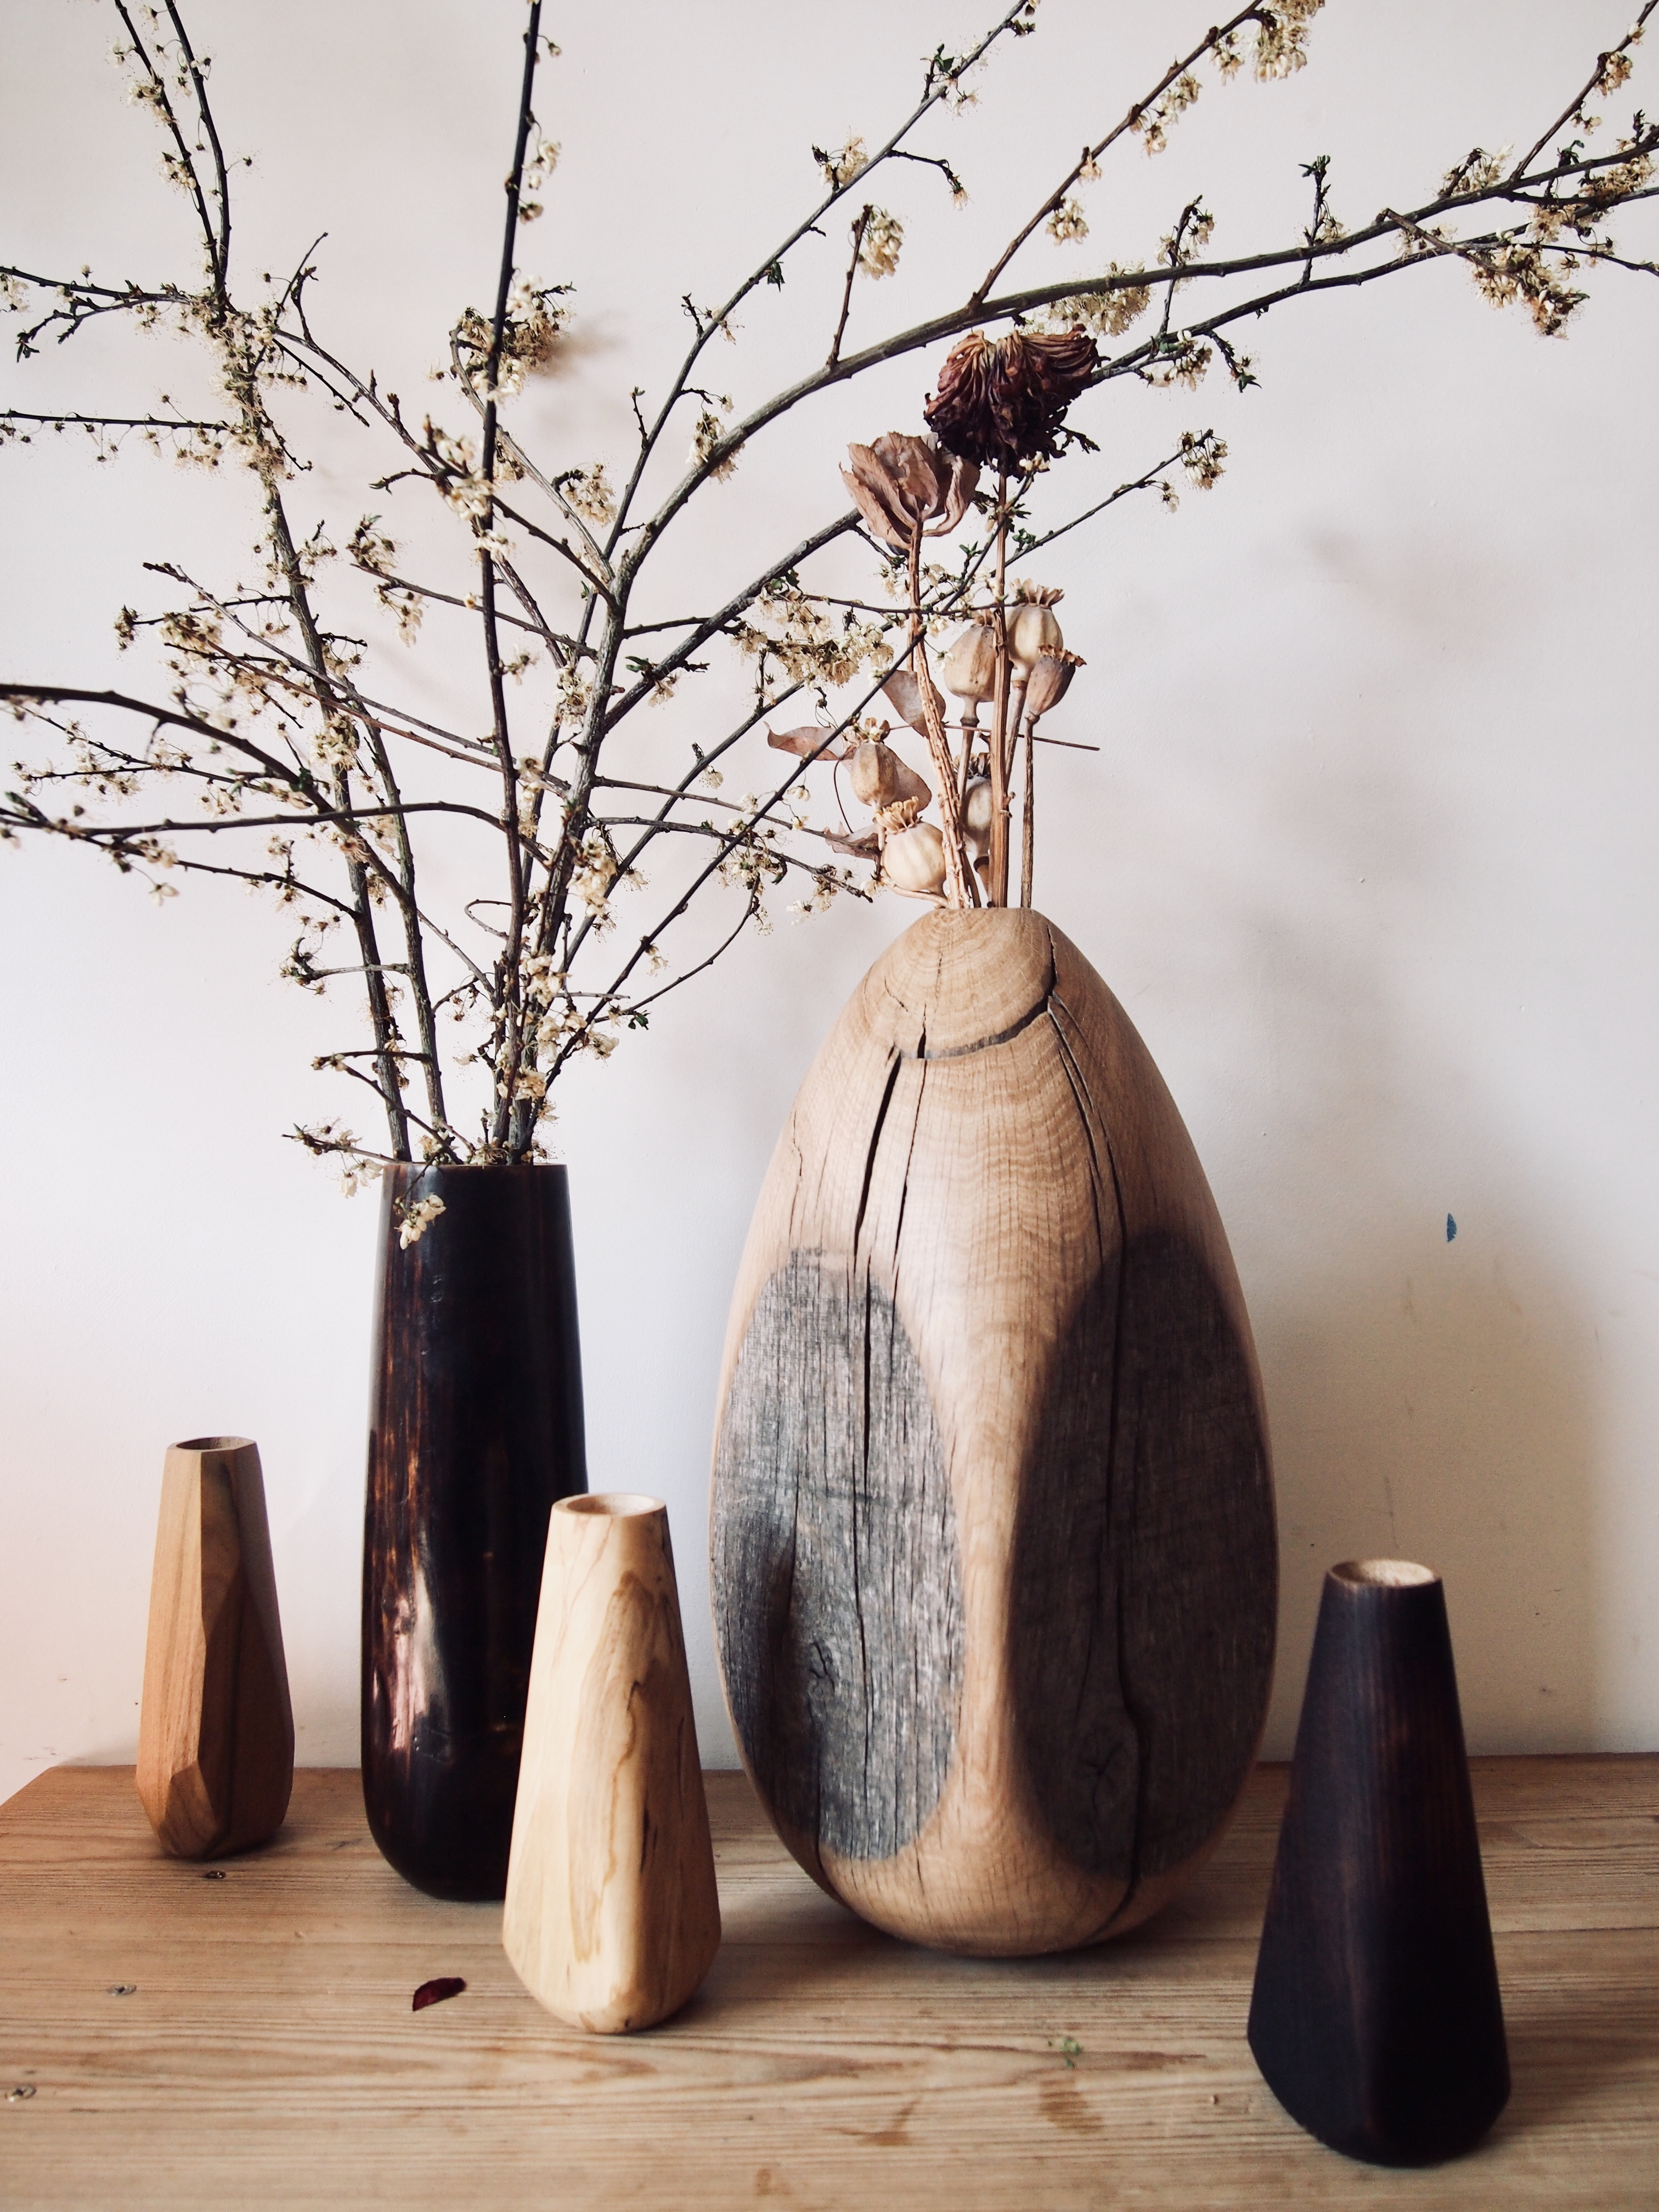 Cracked egg vase made by Woodworker Jami